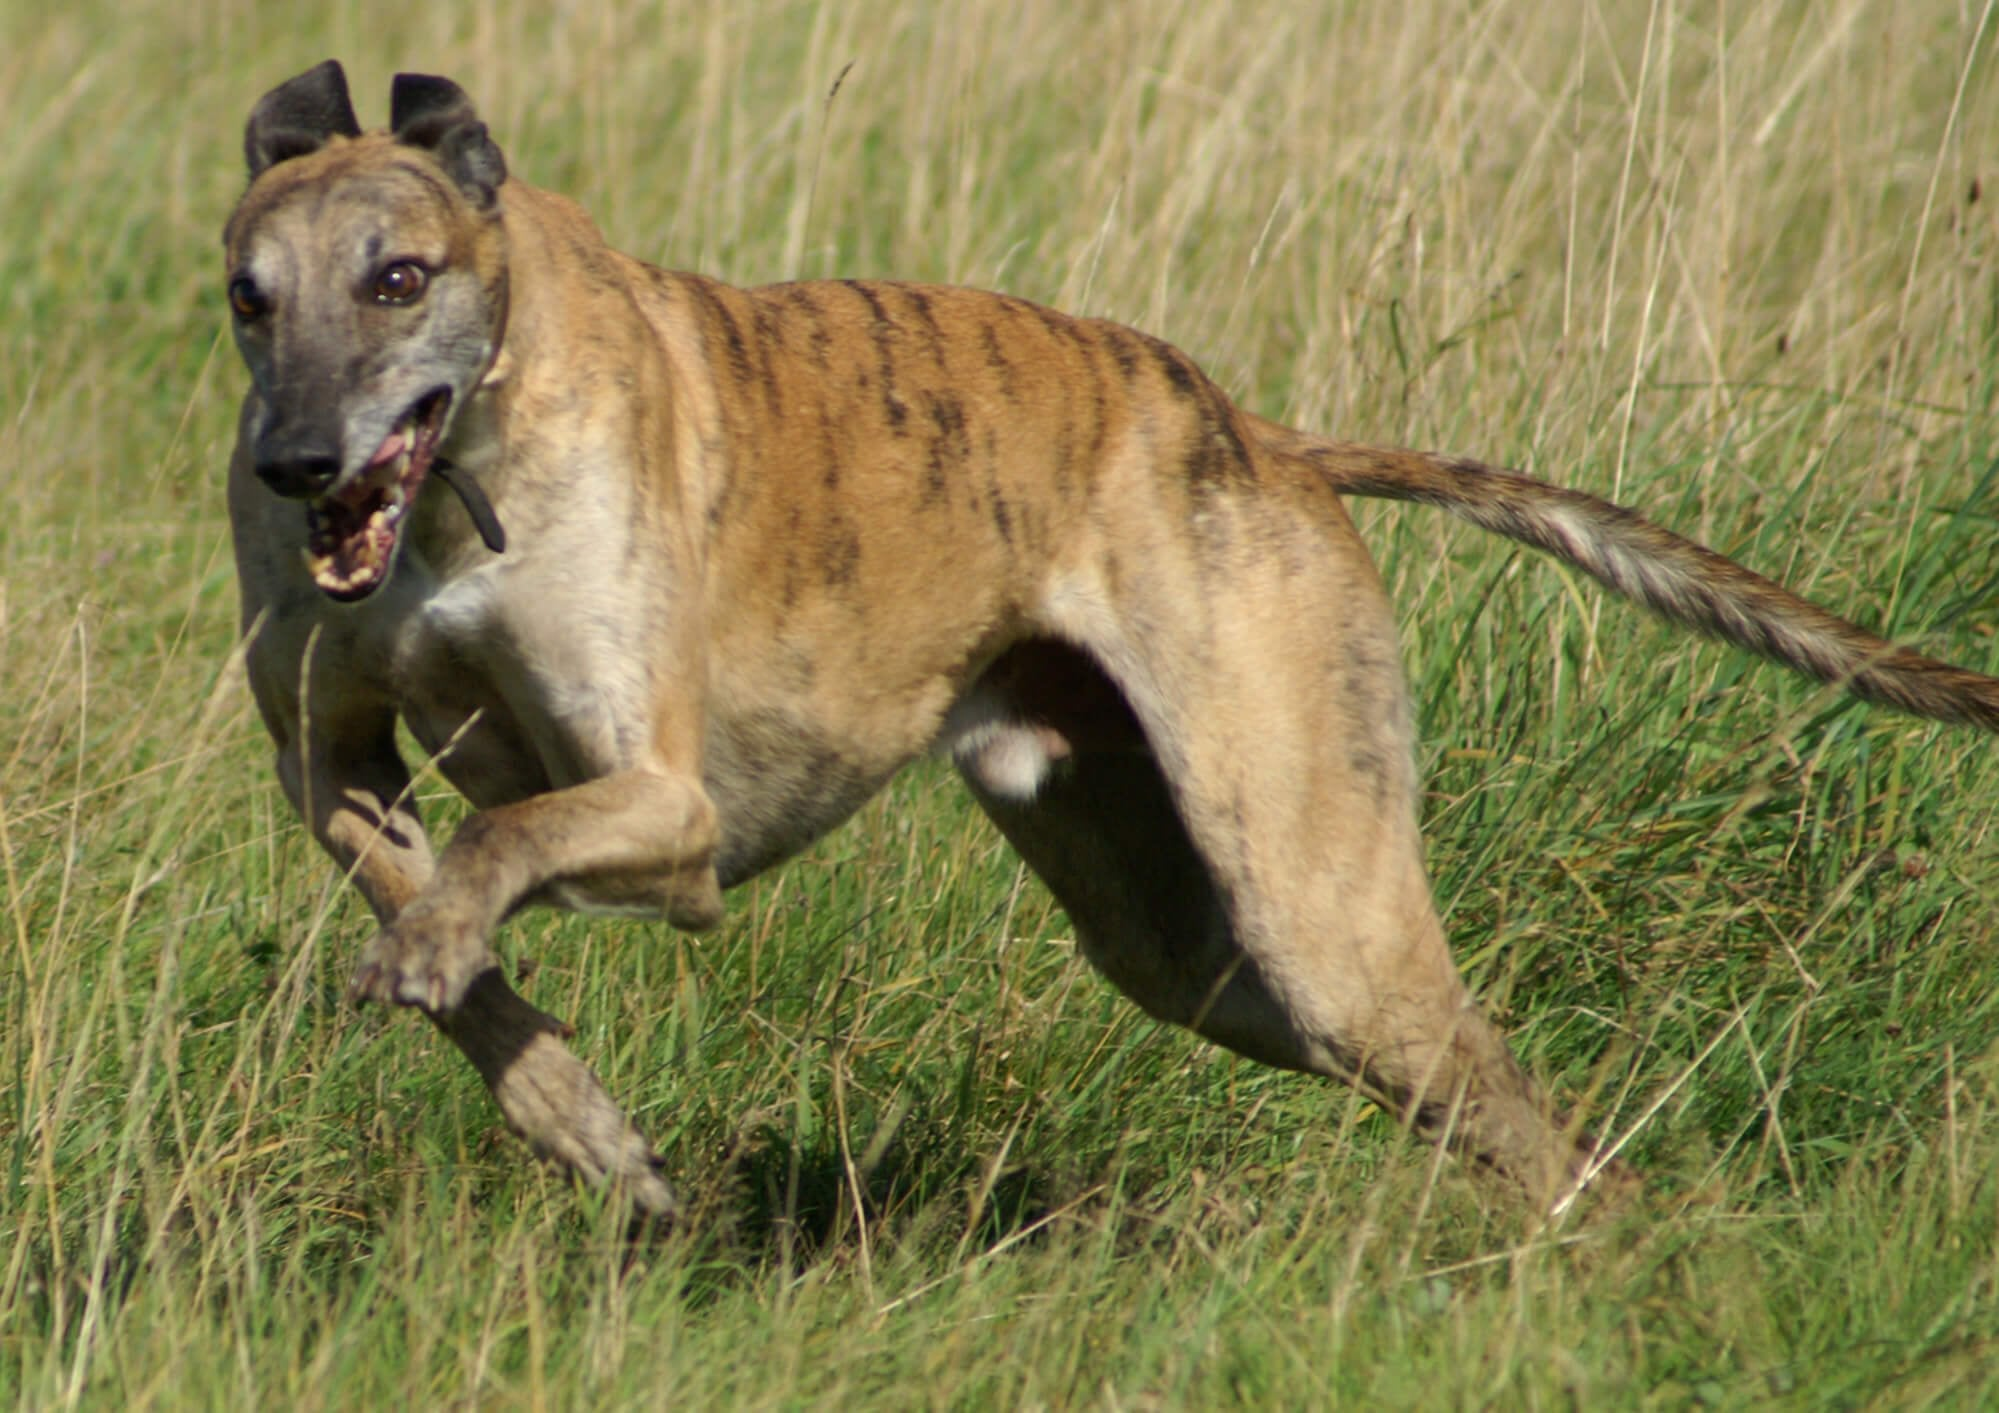 Banjara Greyhounds running through a field